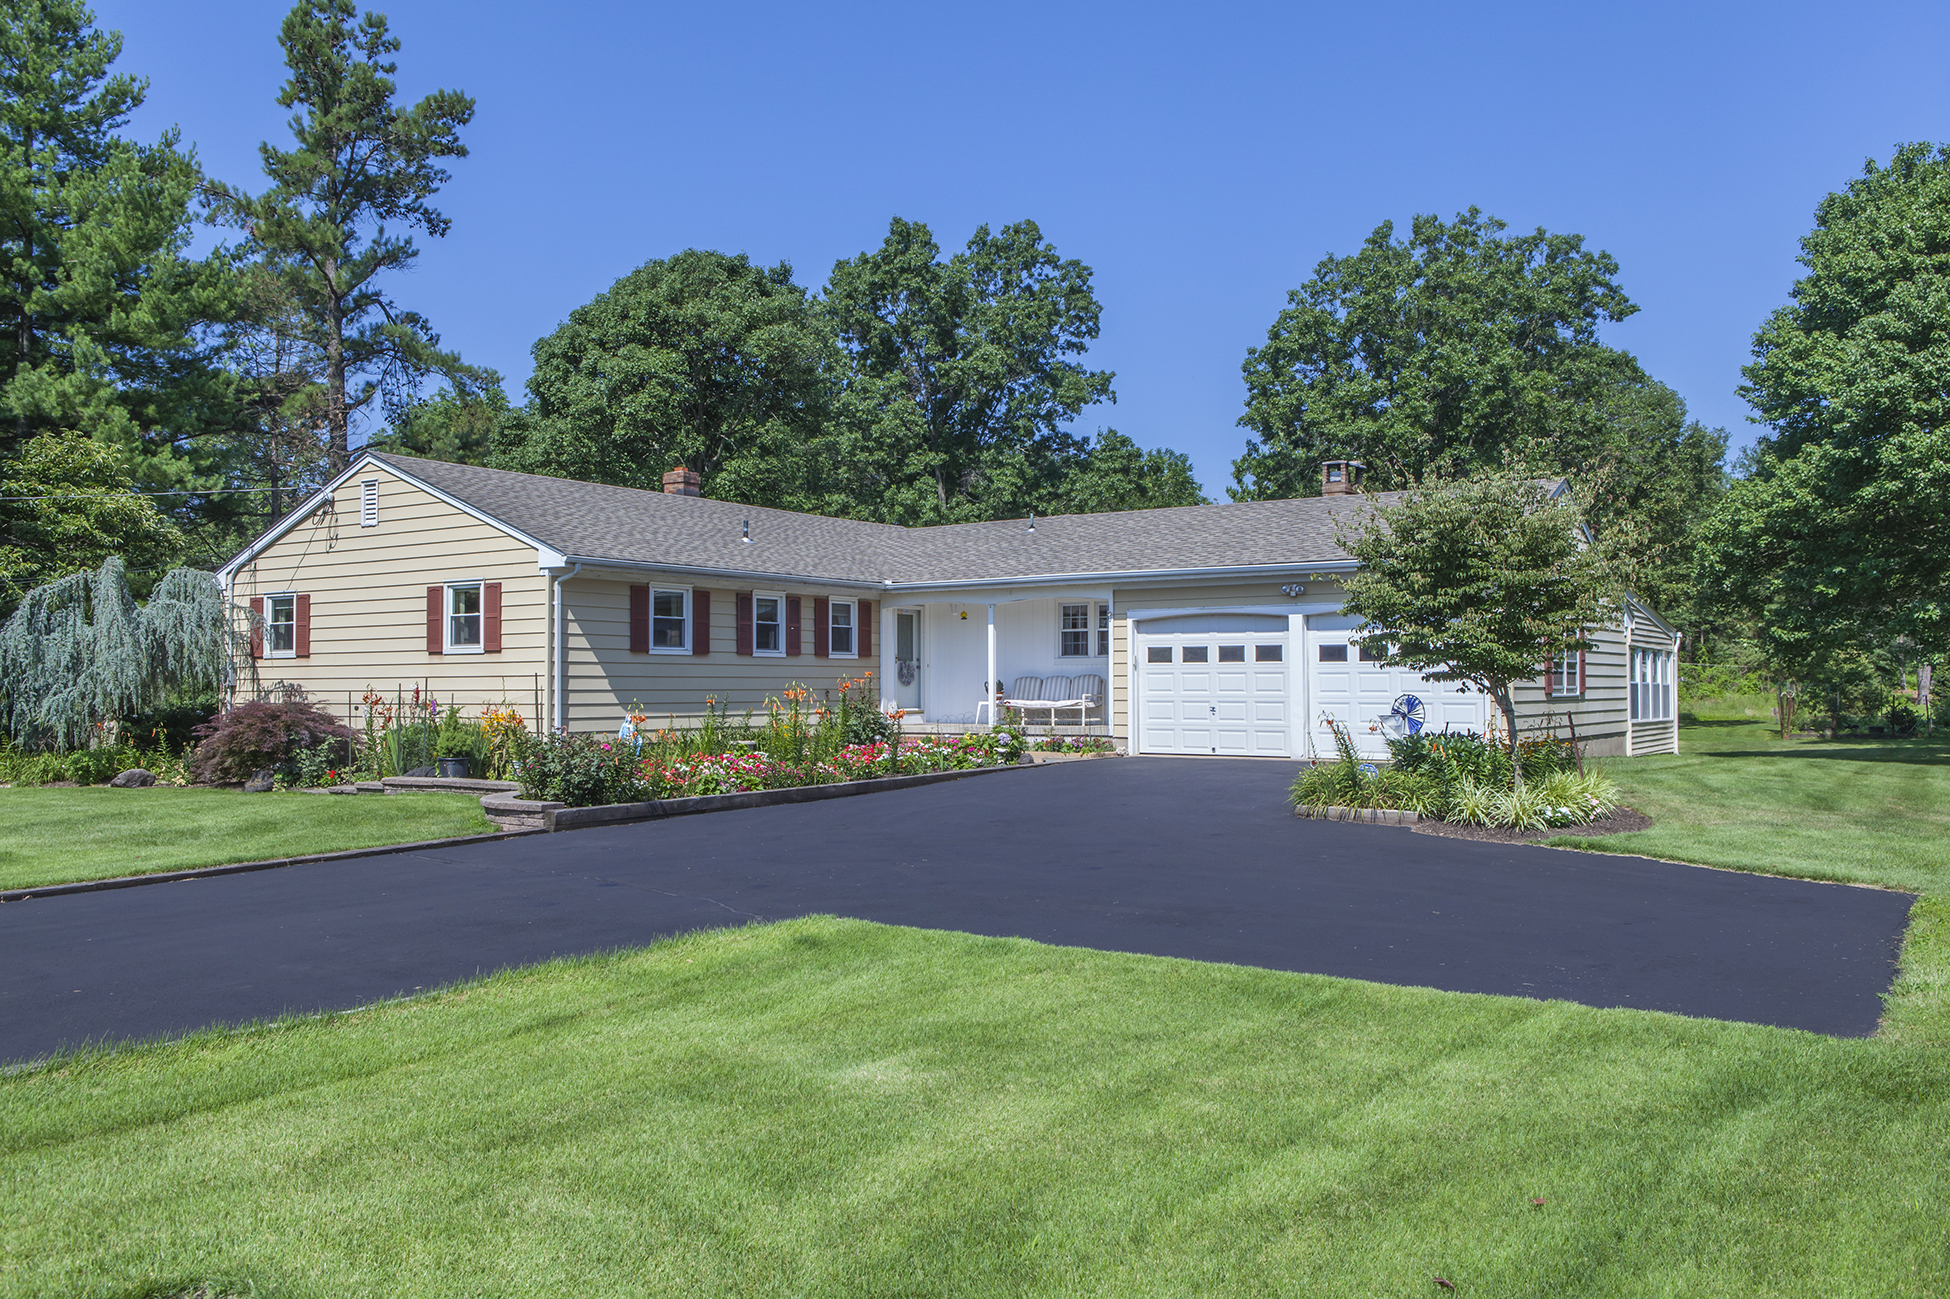 Property For Sale at A Place To Grow - Mongtomery Township